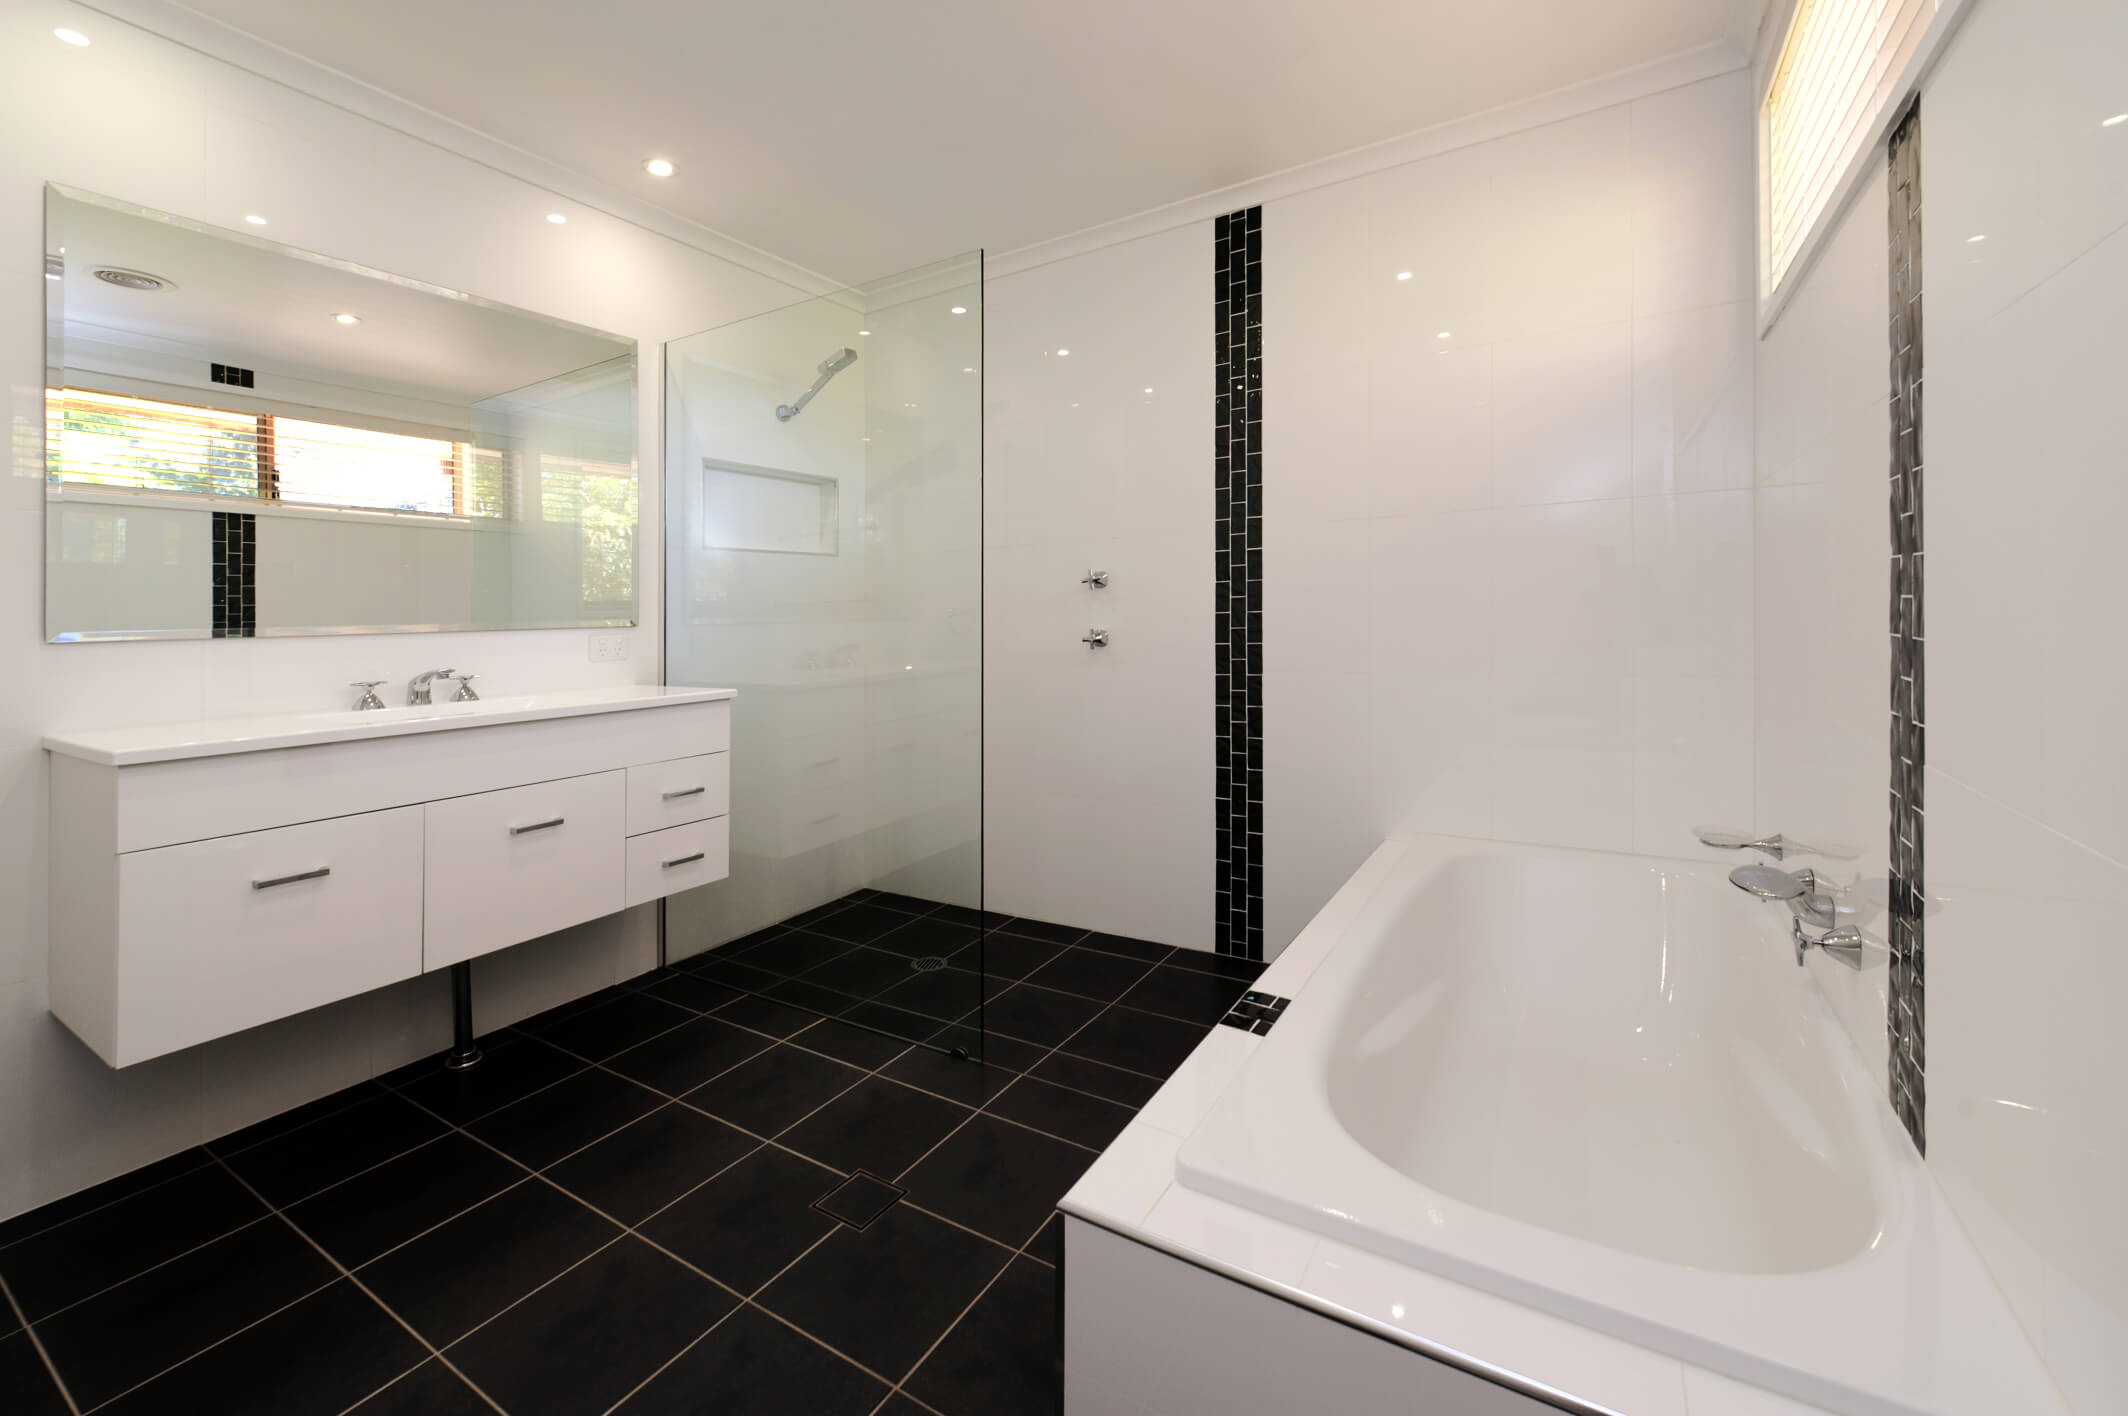 Bathroom Renovations Canberra Photo3 & Expert Bathroom Renovations Canberra | Small to Large Bathroom ...